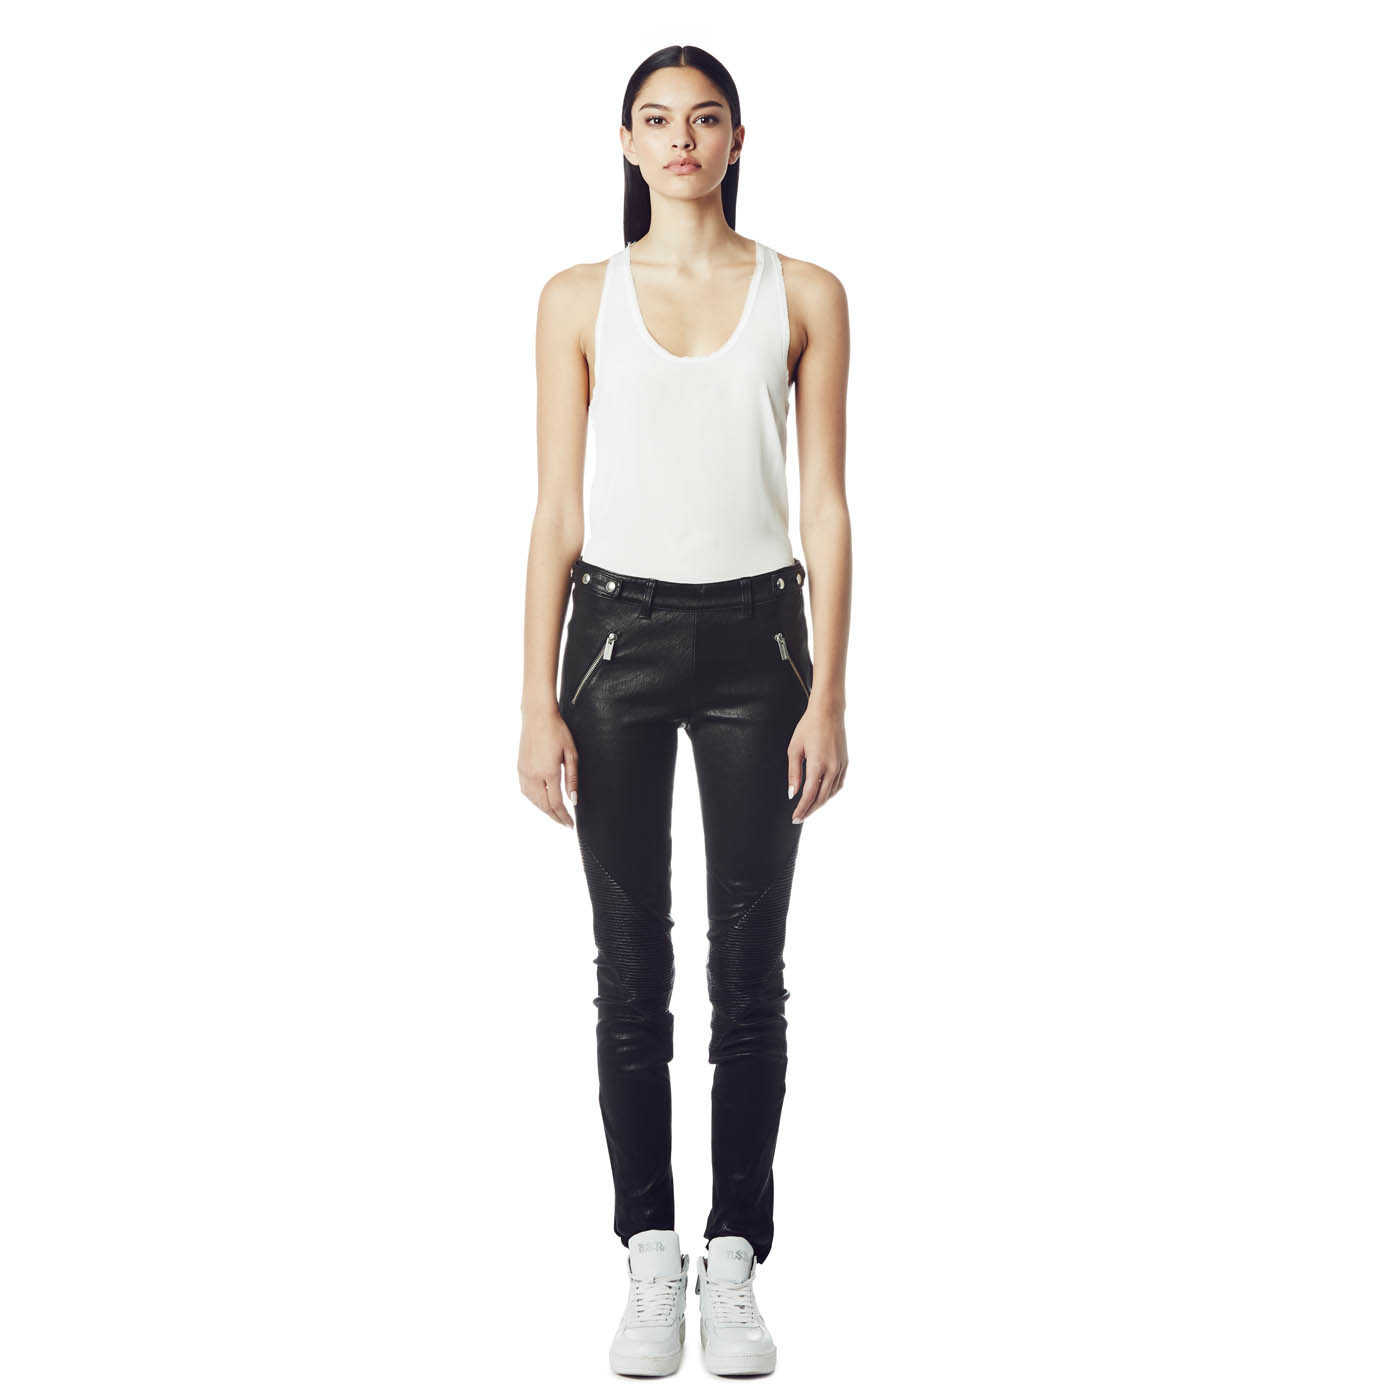 Ash Studio Paris  Discovery Black Leather Pant 265015 (001)